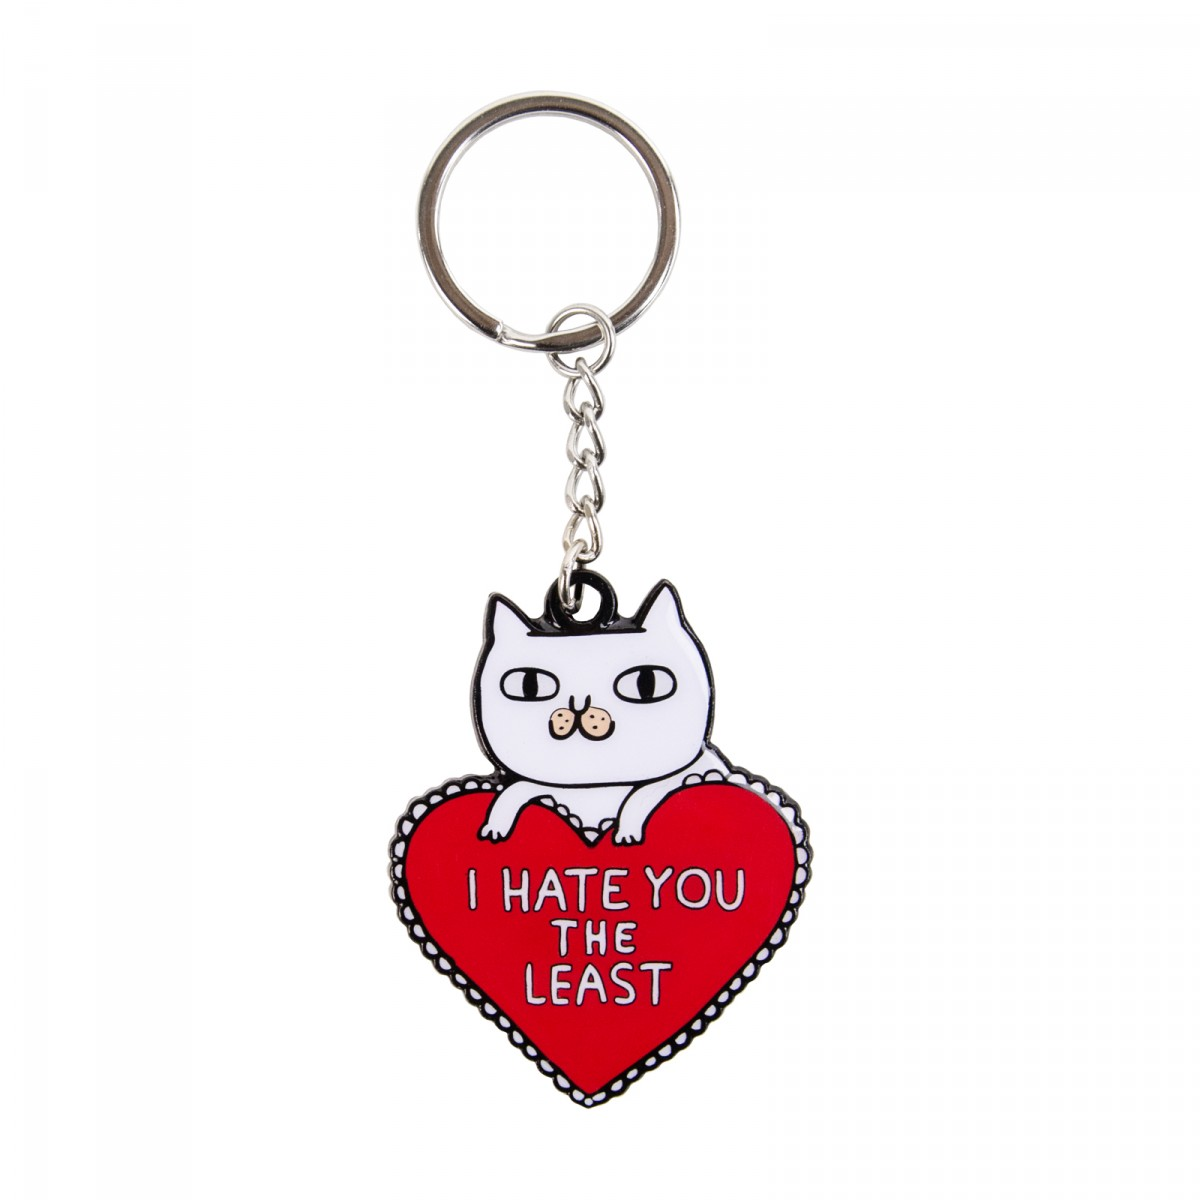 I Hate You the Least Key Ring - Sarah Gift Ideas 2d4242611